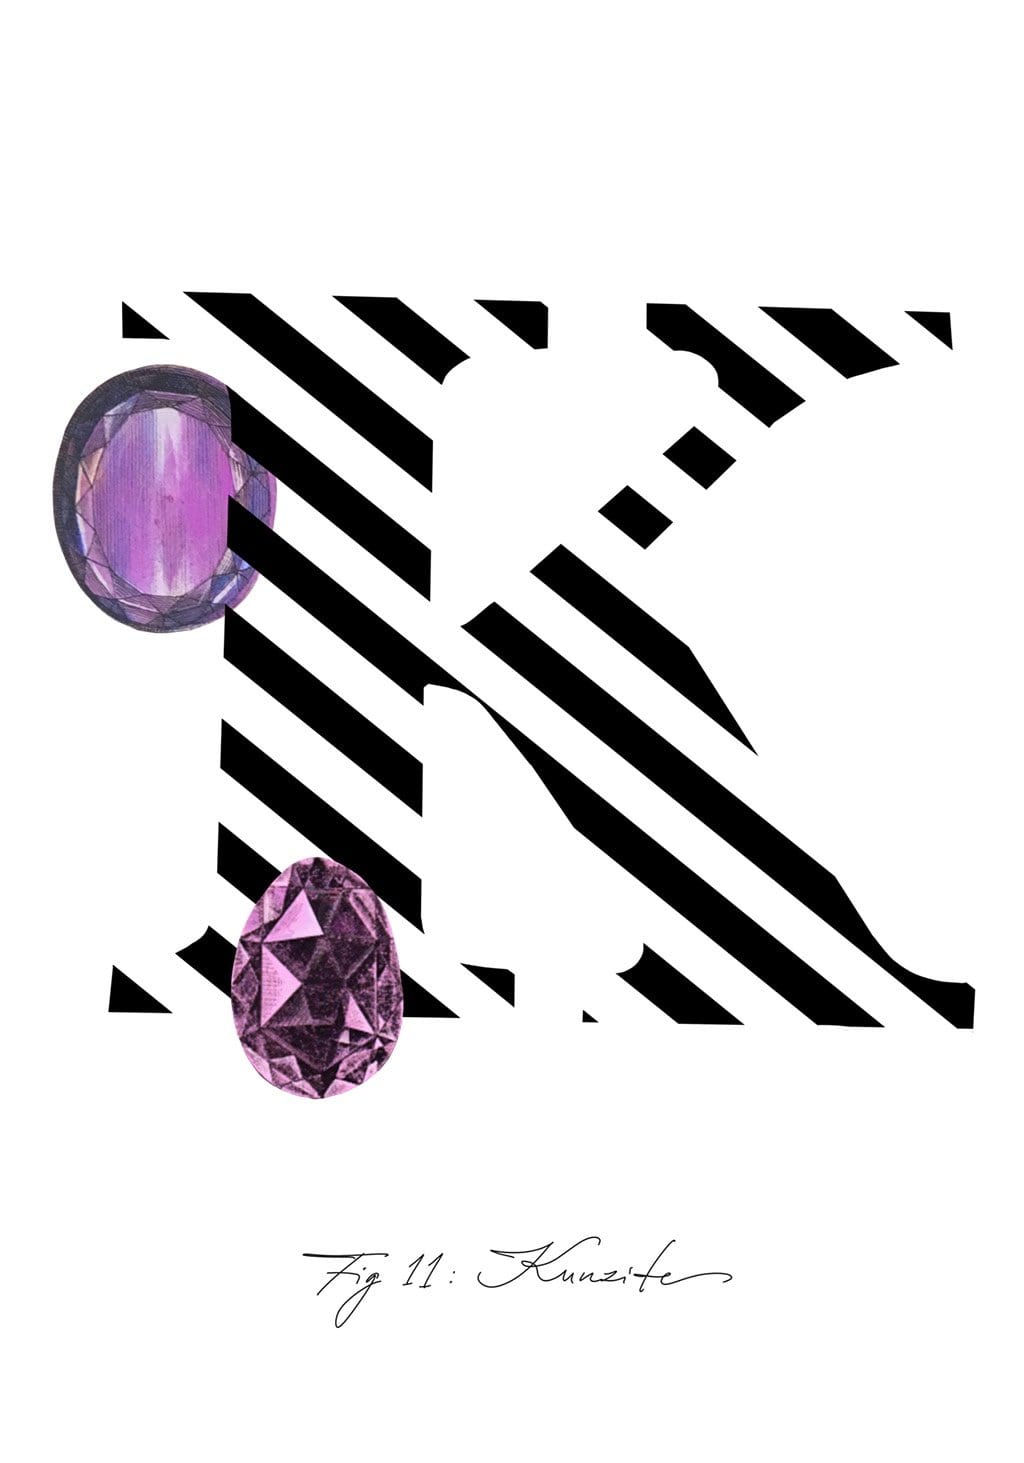 Greeting Card featuring the letter K and the gemstone Kunzite.